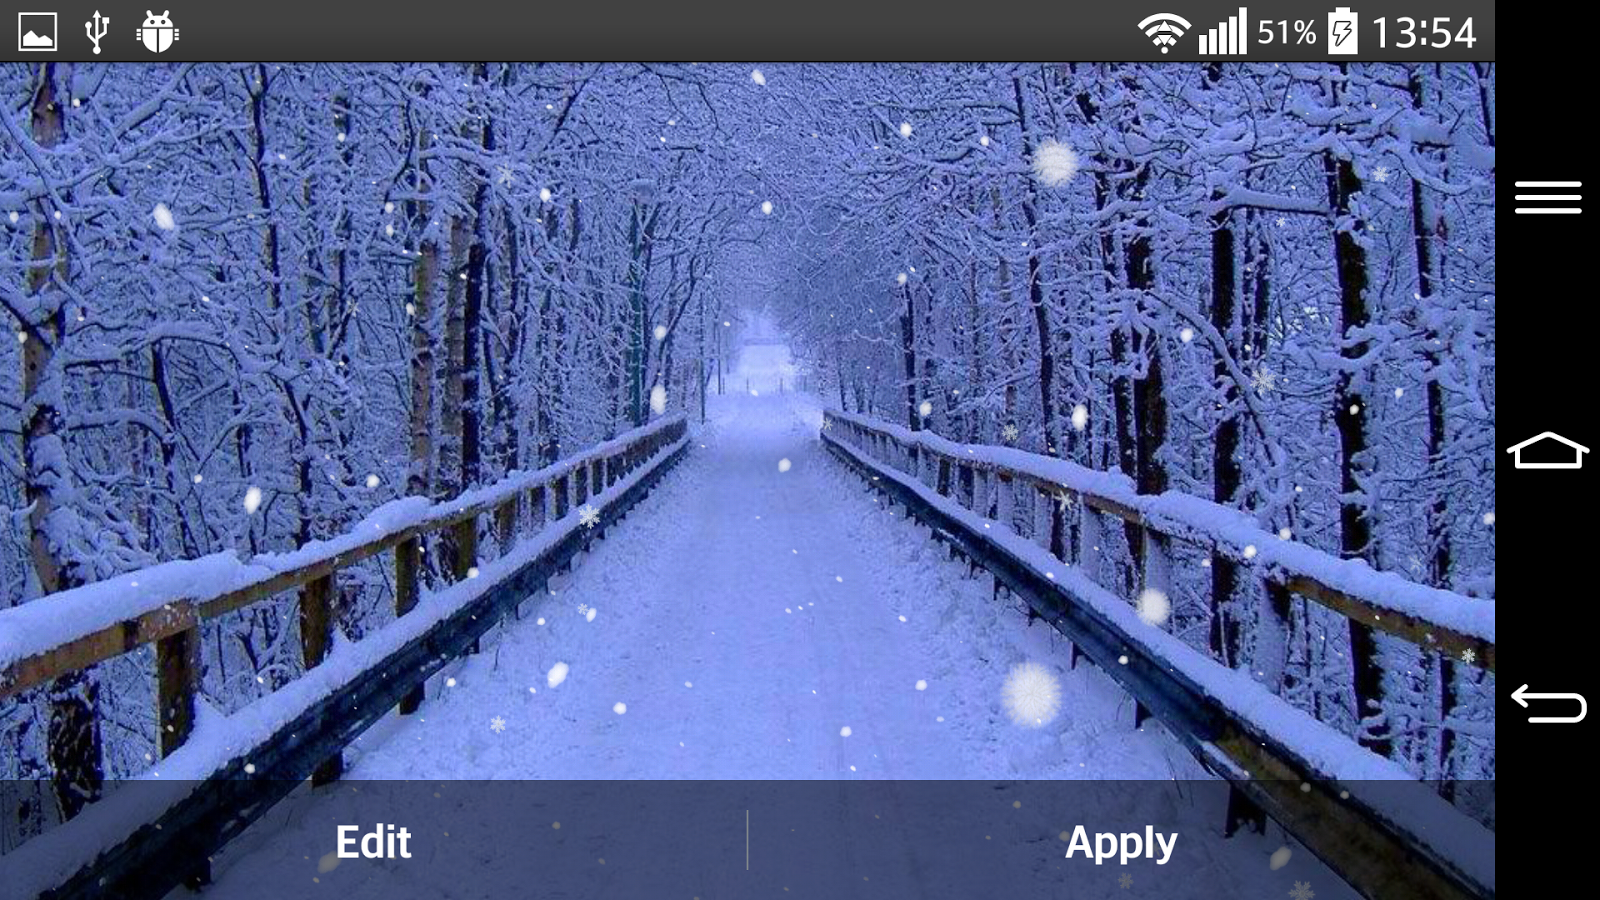 Winter Forest Live Wallpaper  screenshotWinter Forest Live Wallpaper   Android Apps on Google Play. Forest Hd Live Wallpaper Free Apk. Home Design Ideas